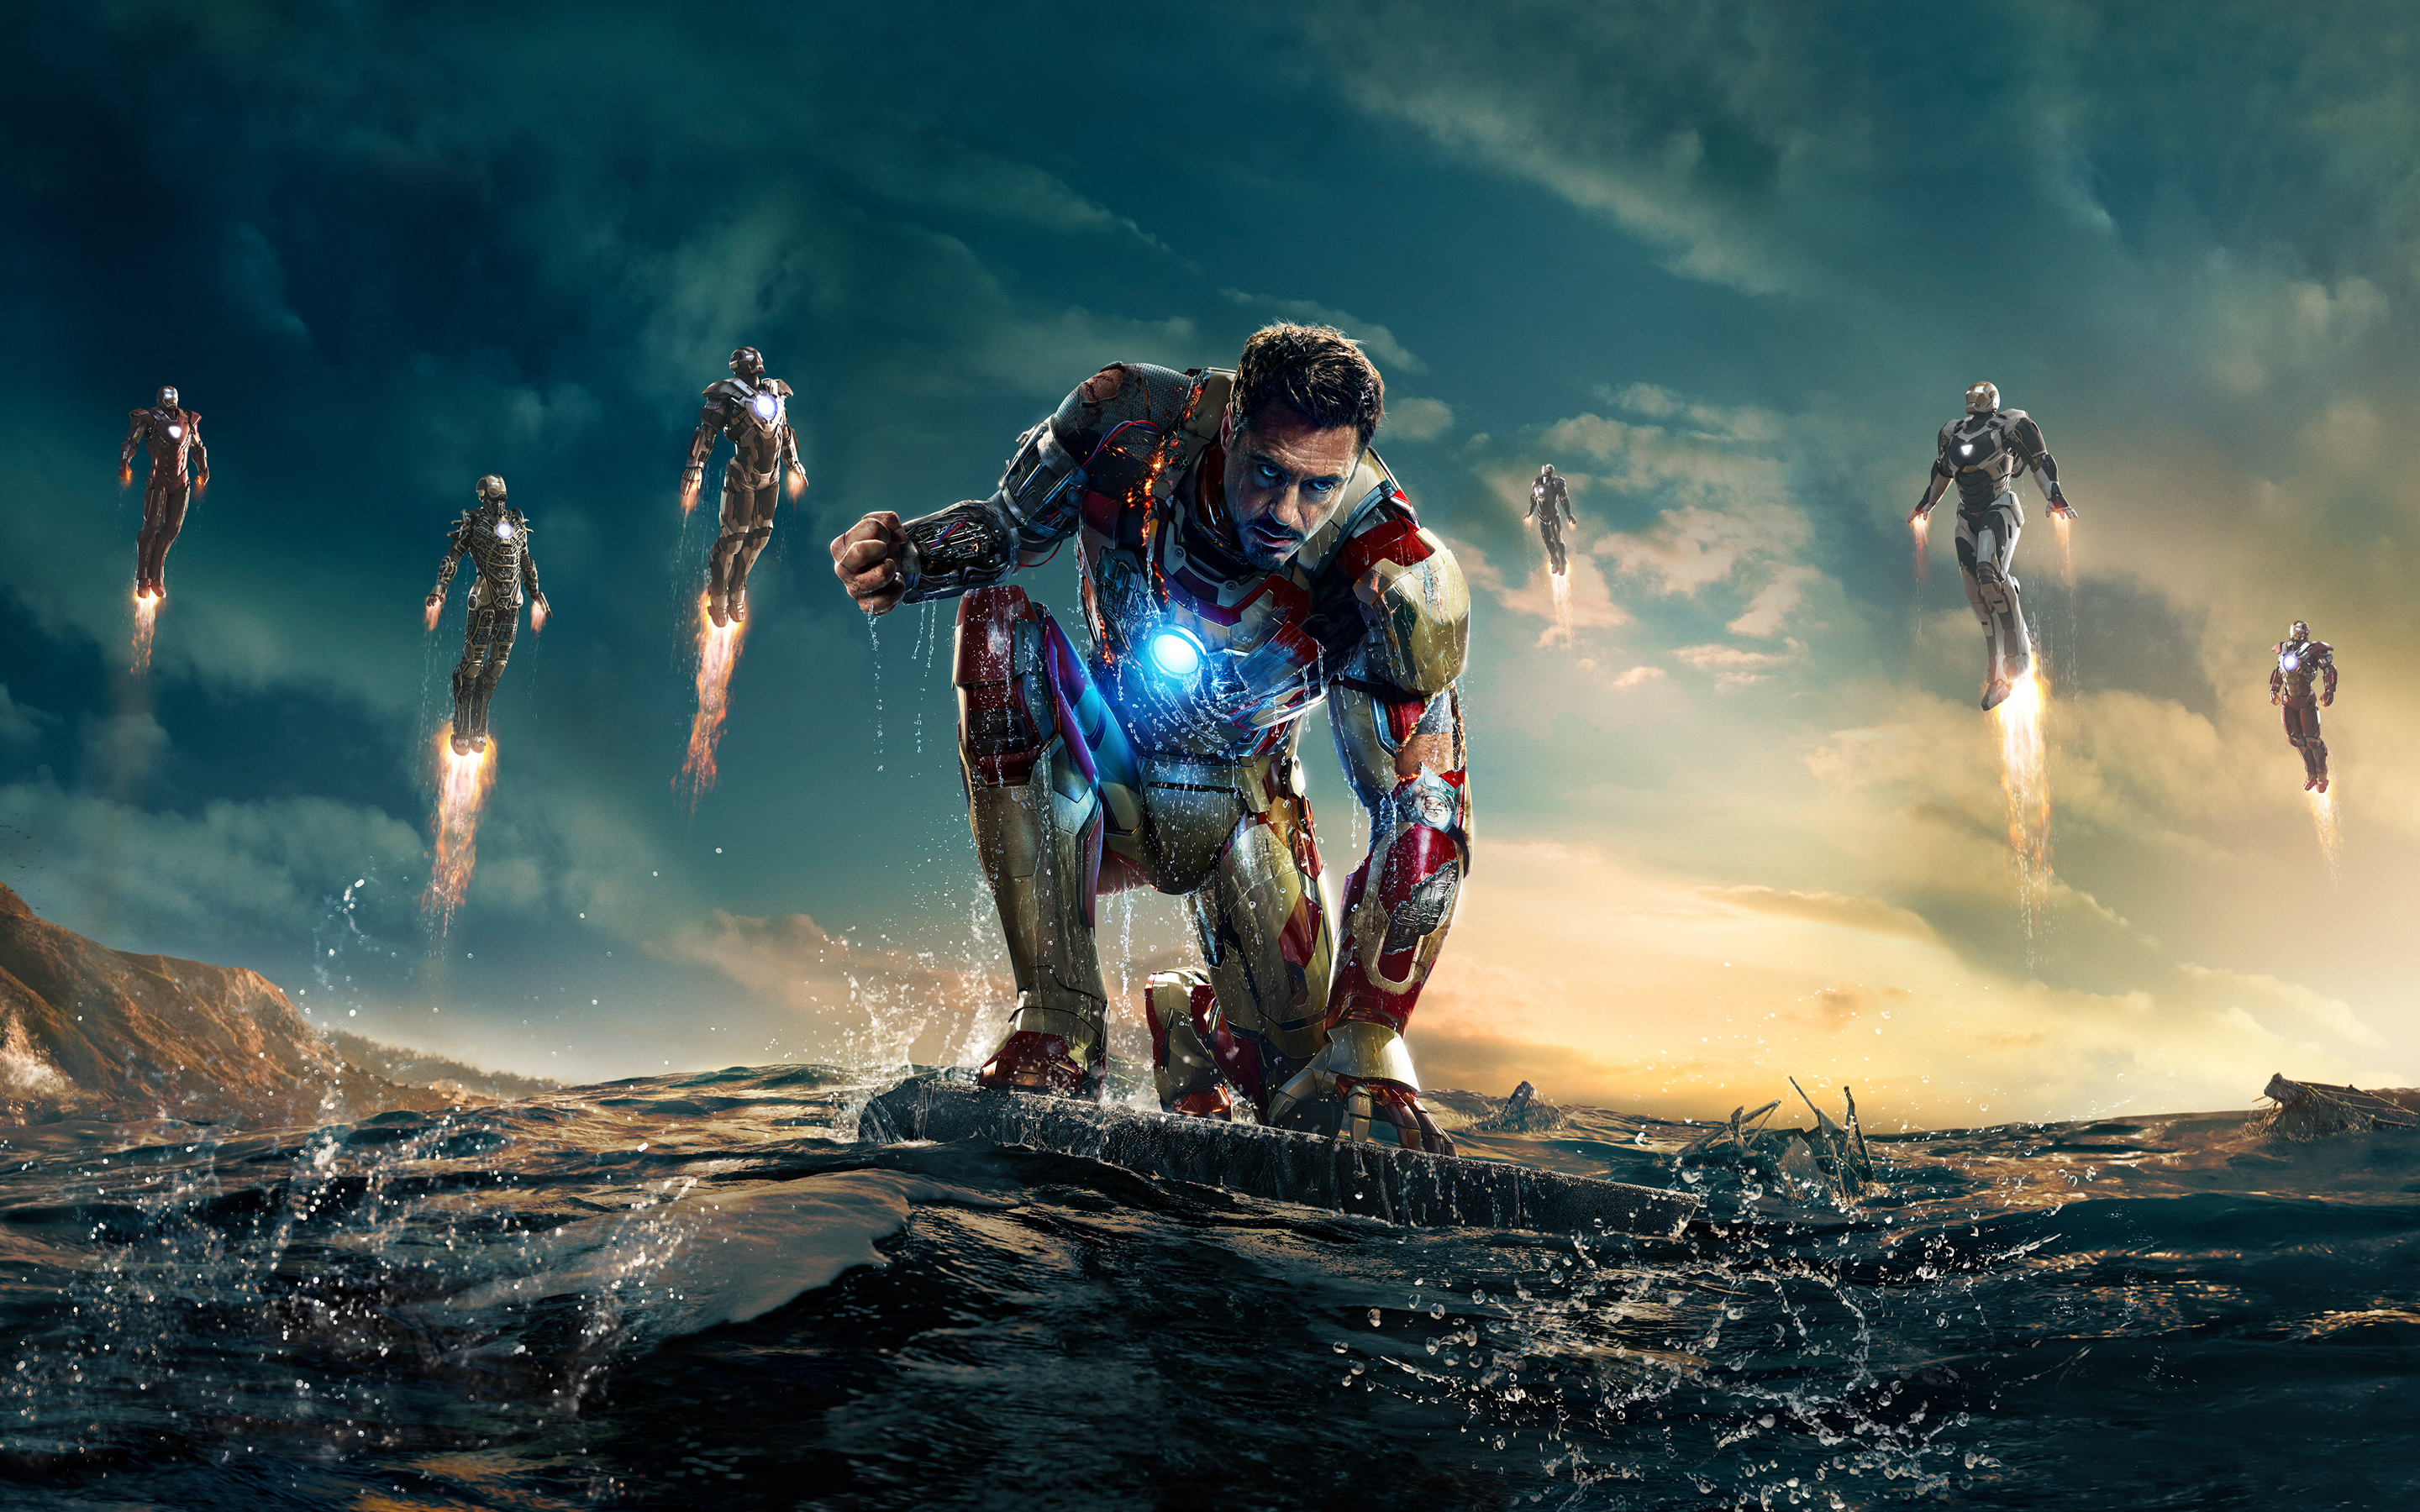 Iron Man Marvel Robert Downey Jr